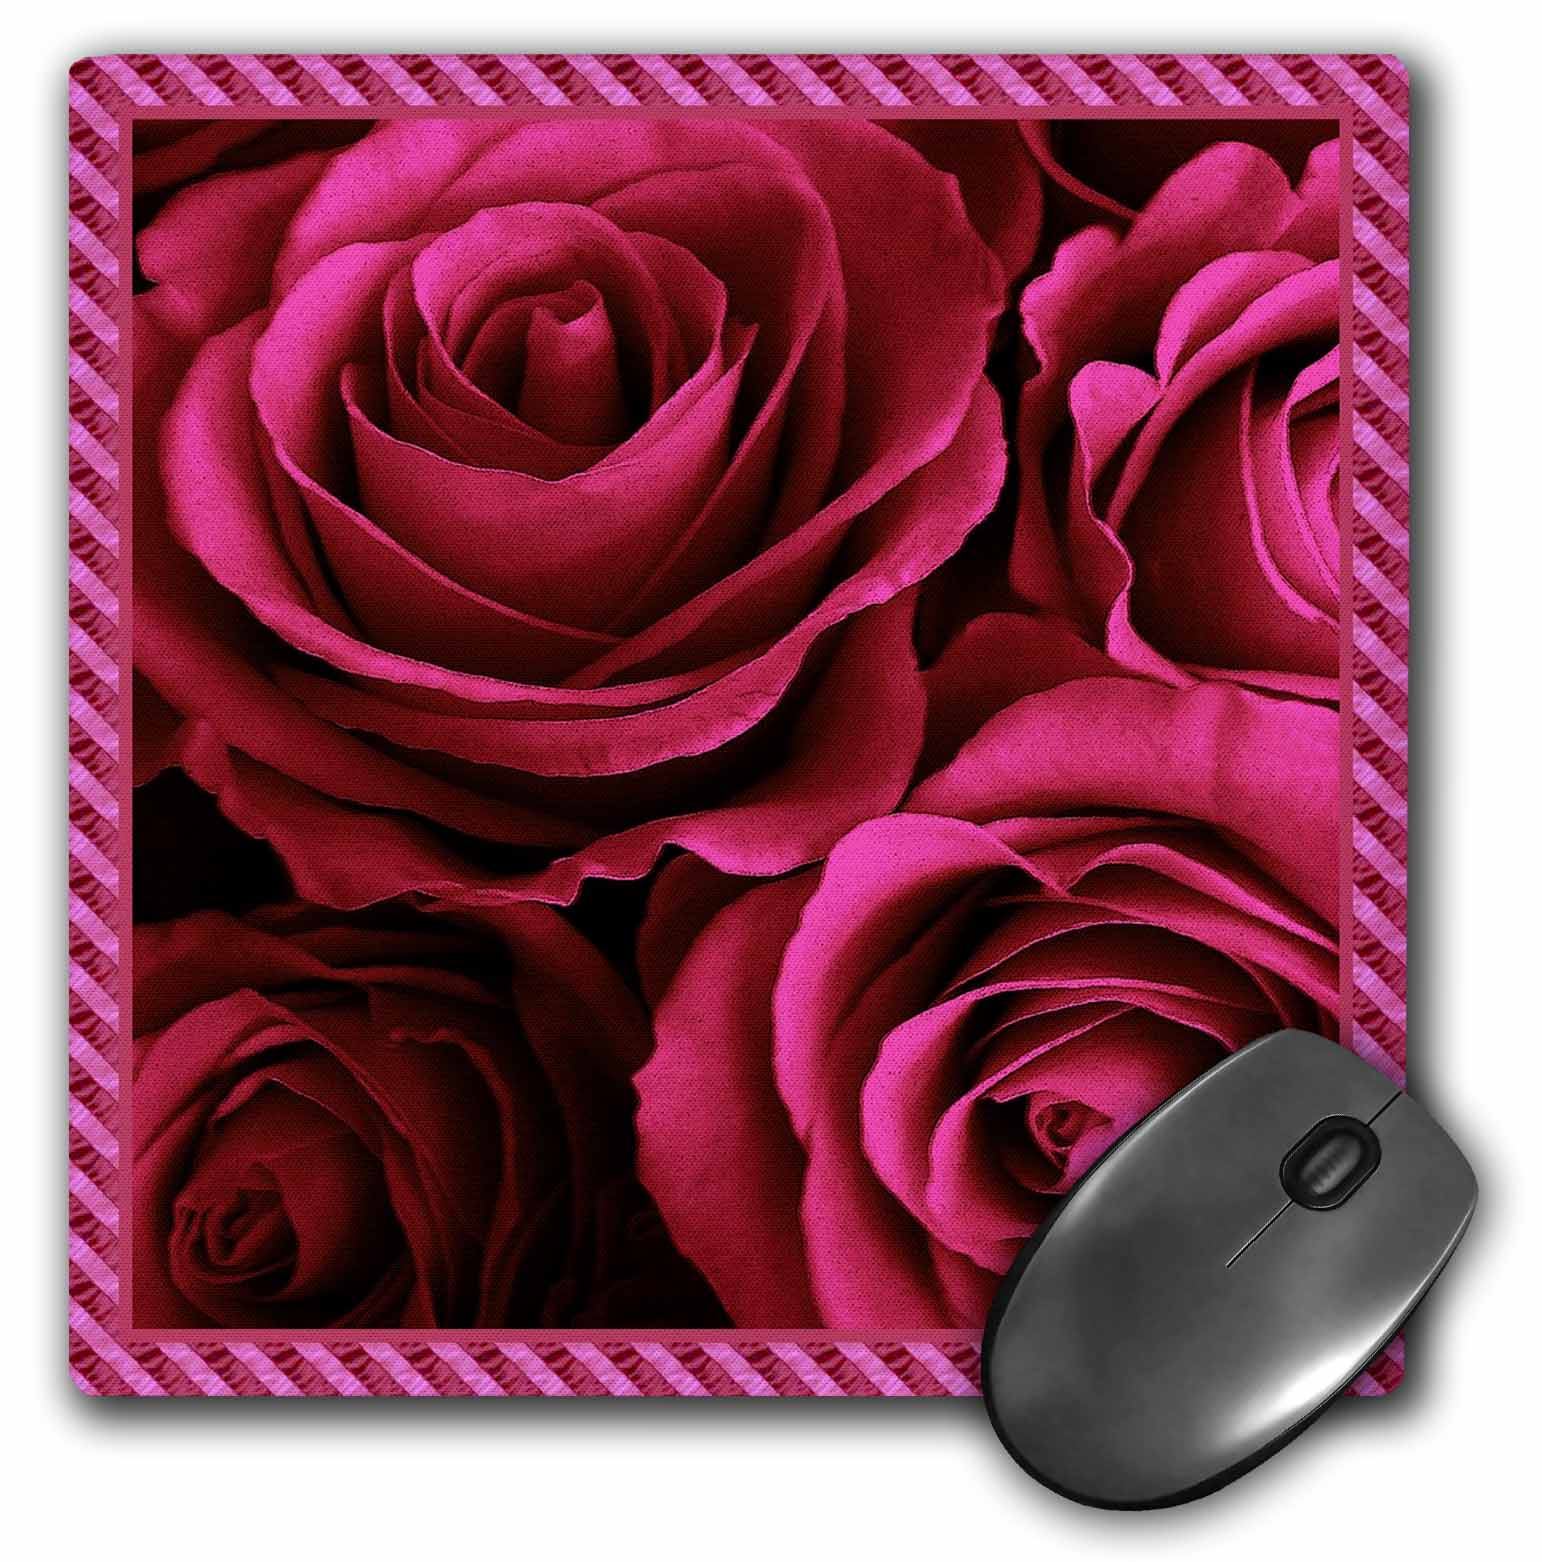 3dRose Close up scene of dreamy rich red roses surrounded by a striped frame, Mouse Pad, 8 by 8 inches